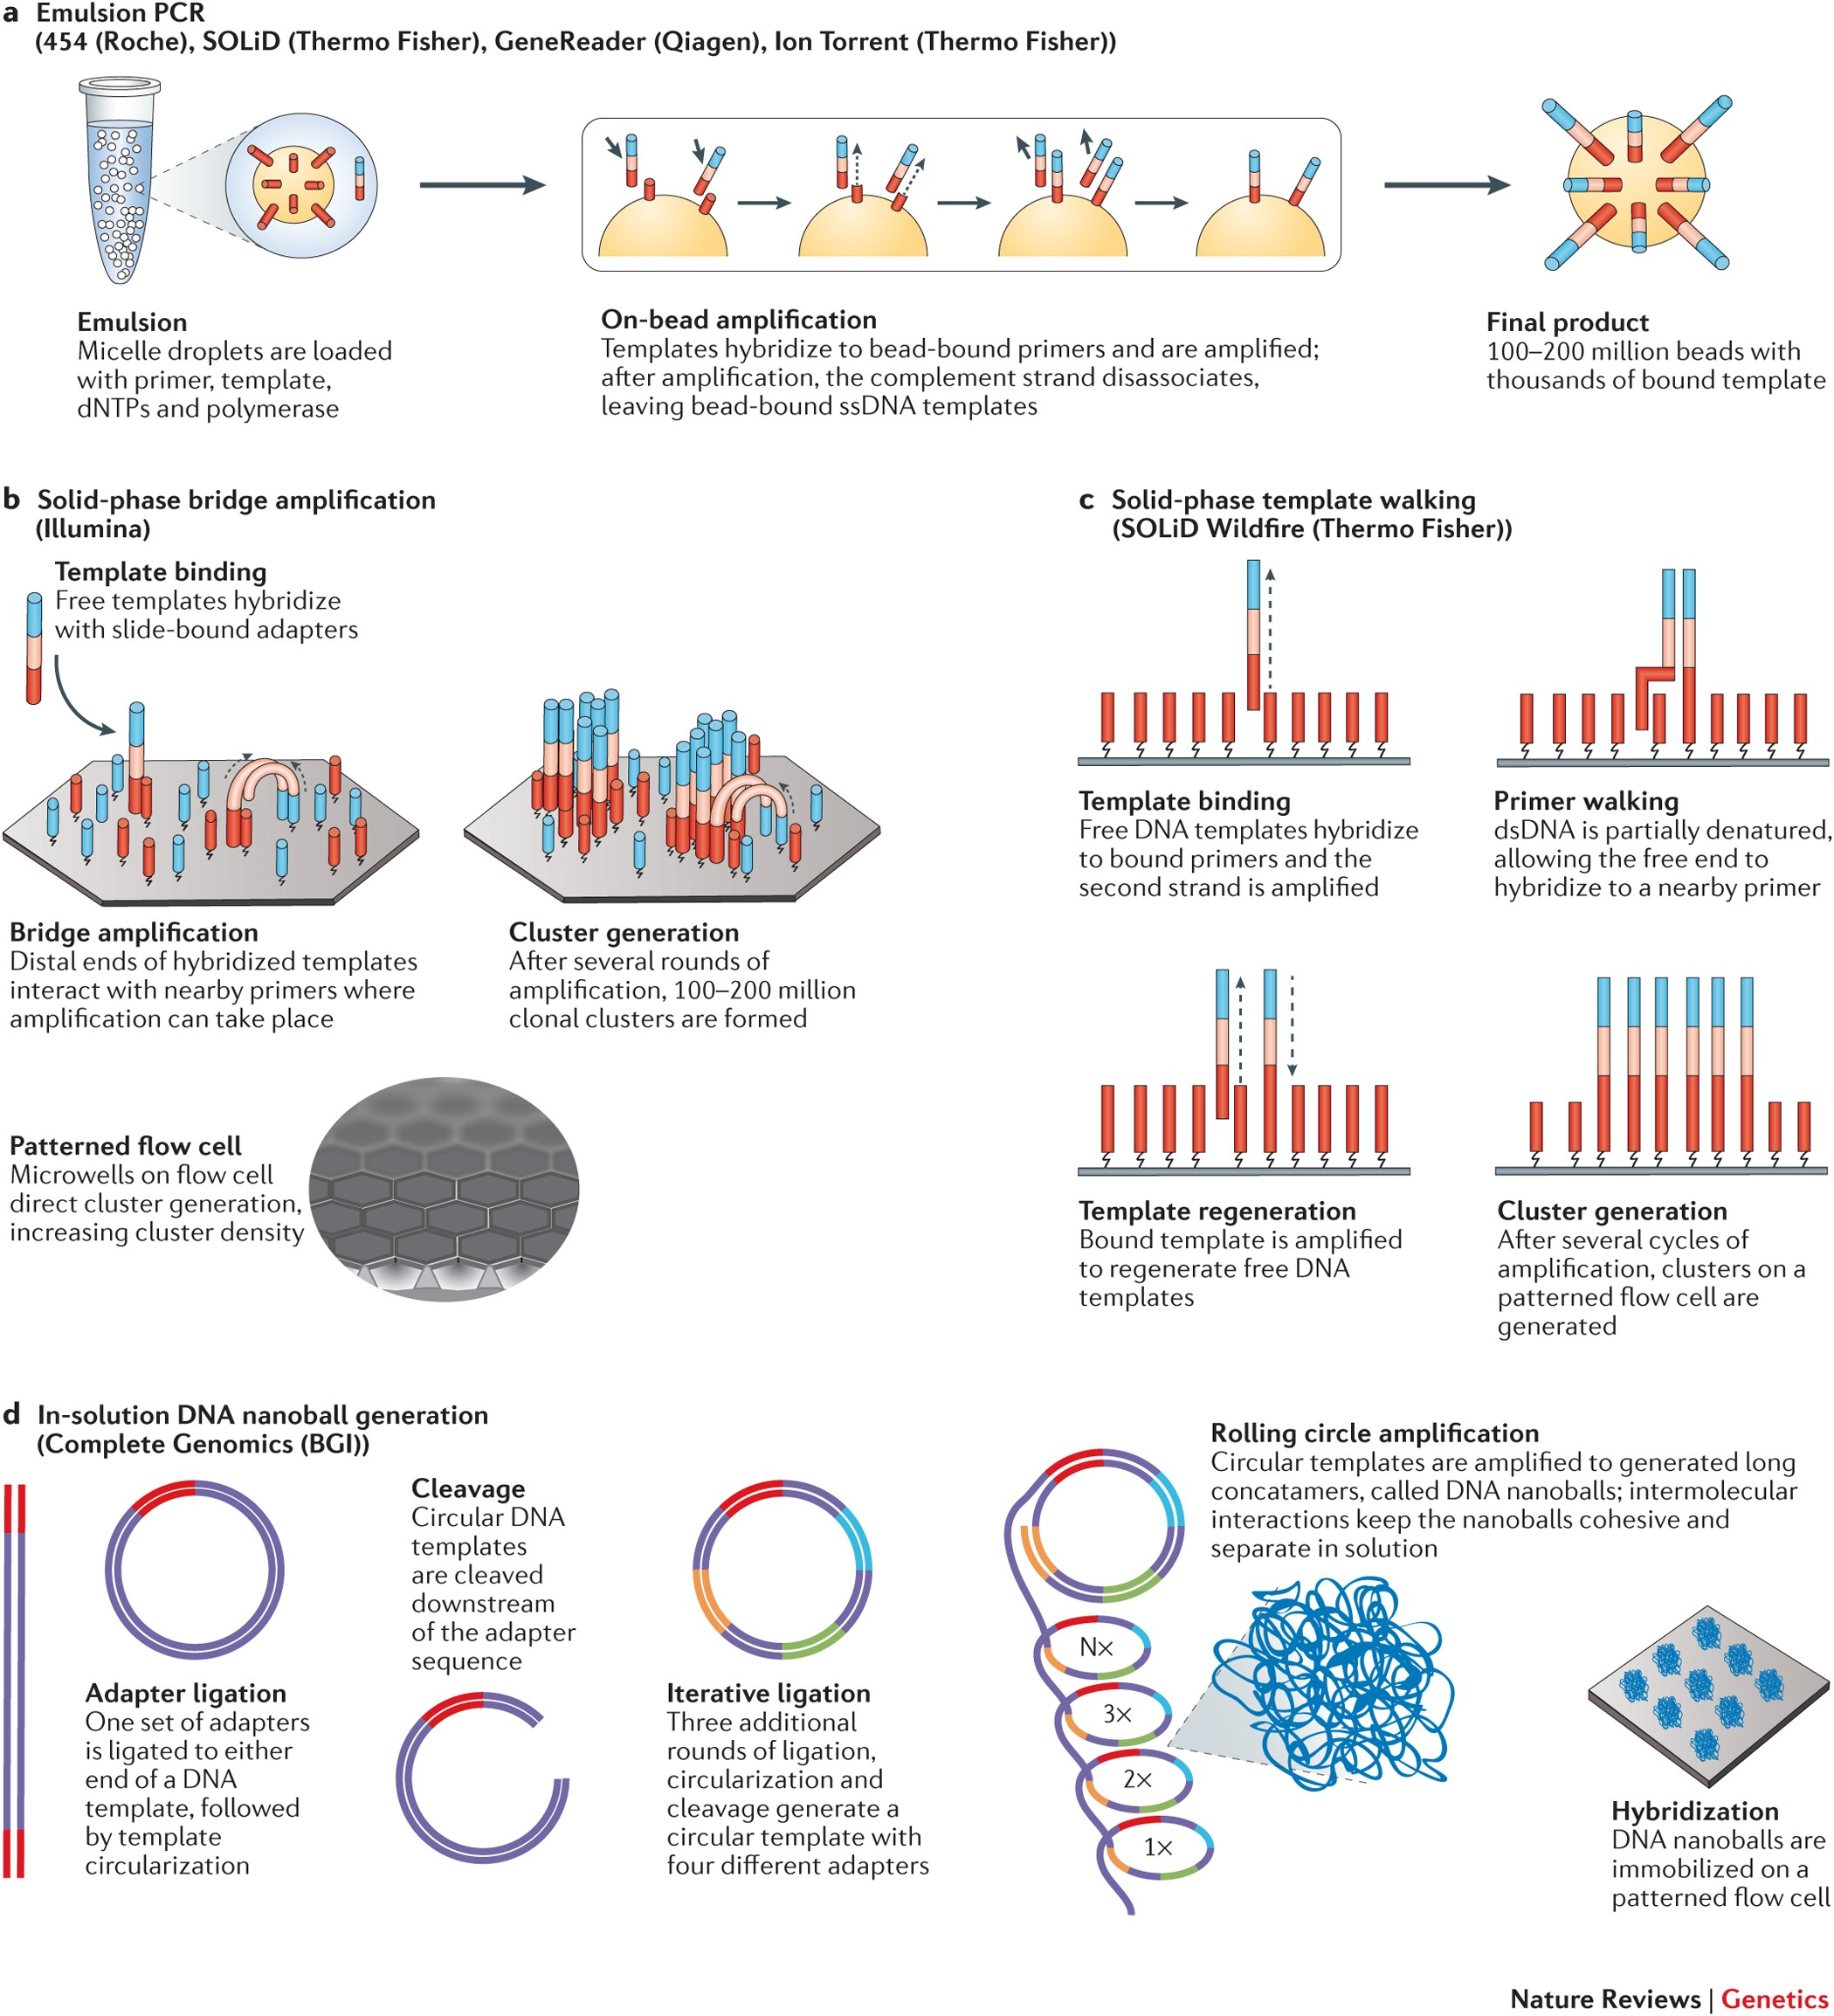 Coming Of Age Ten Years Of Next Generation Sequencing Technologies Nature Reviews Genetics